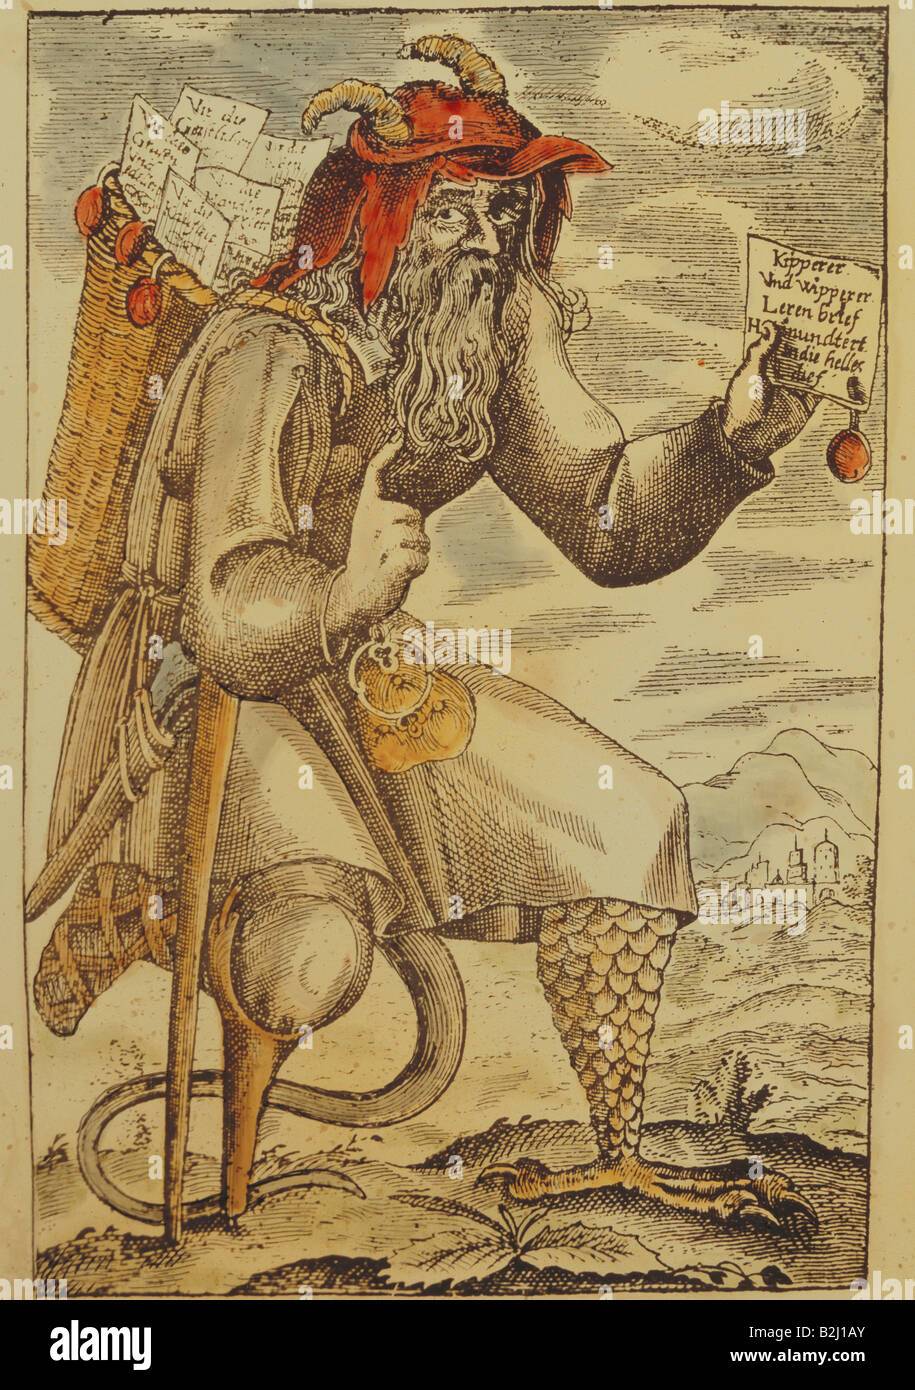 money / finance, counterfeiting, 'Kipperer und Wipperer' (Tipper and See-Saw Time), copper engraving, coloured, - Stock Image